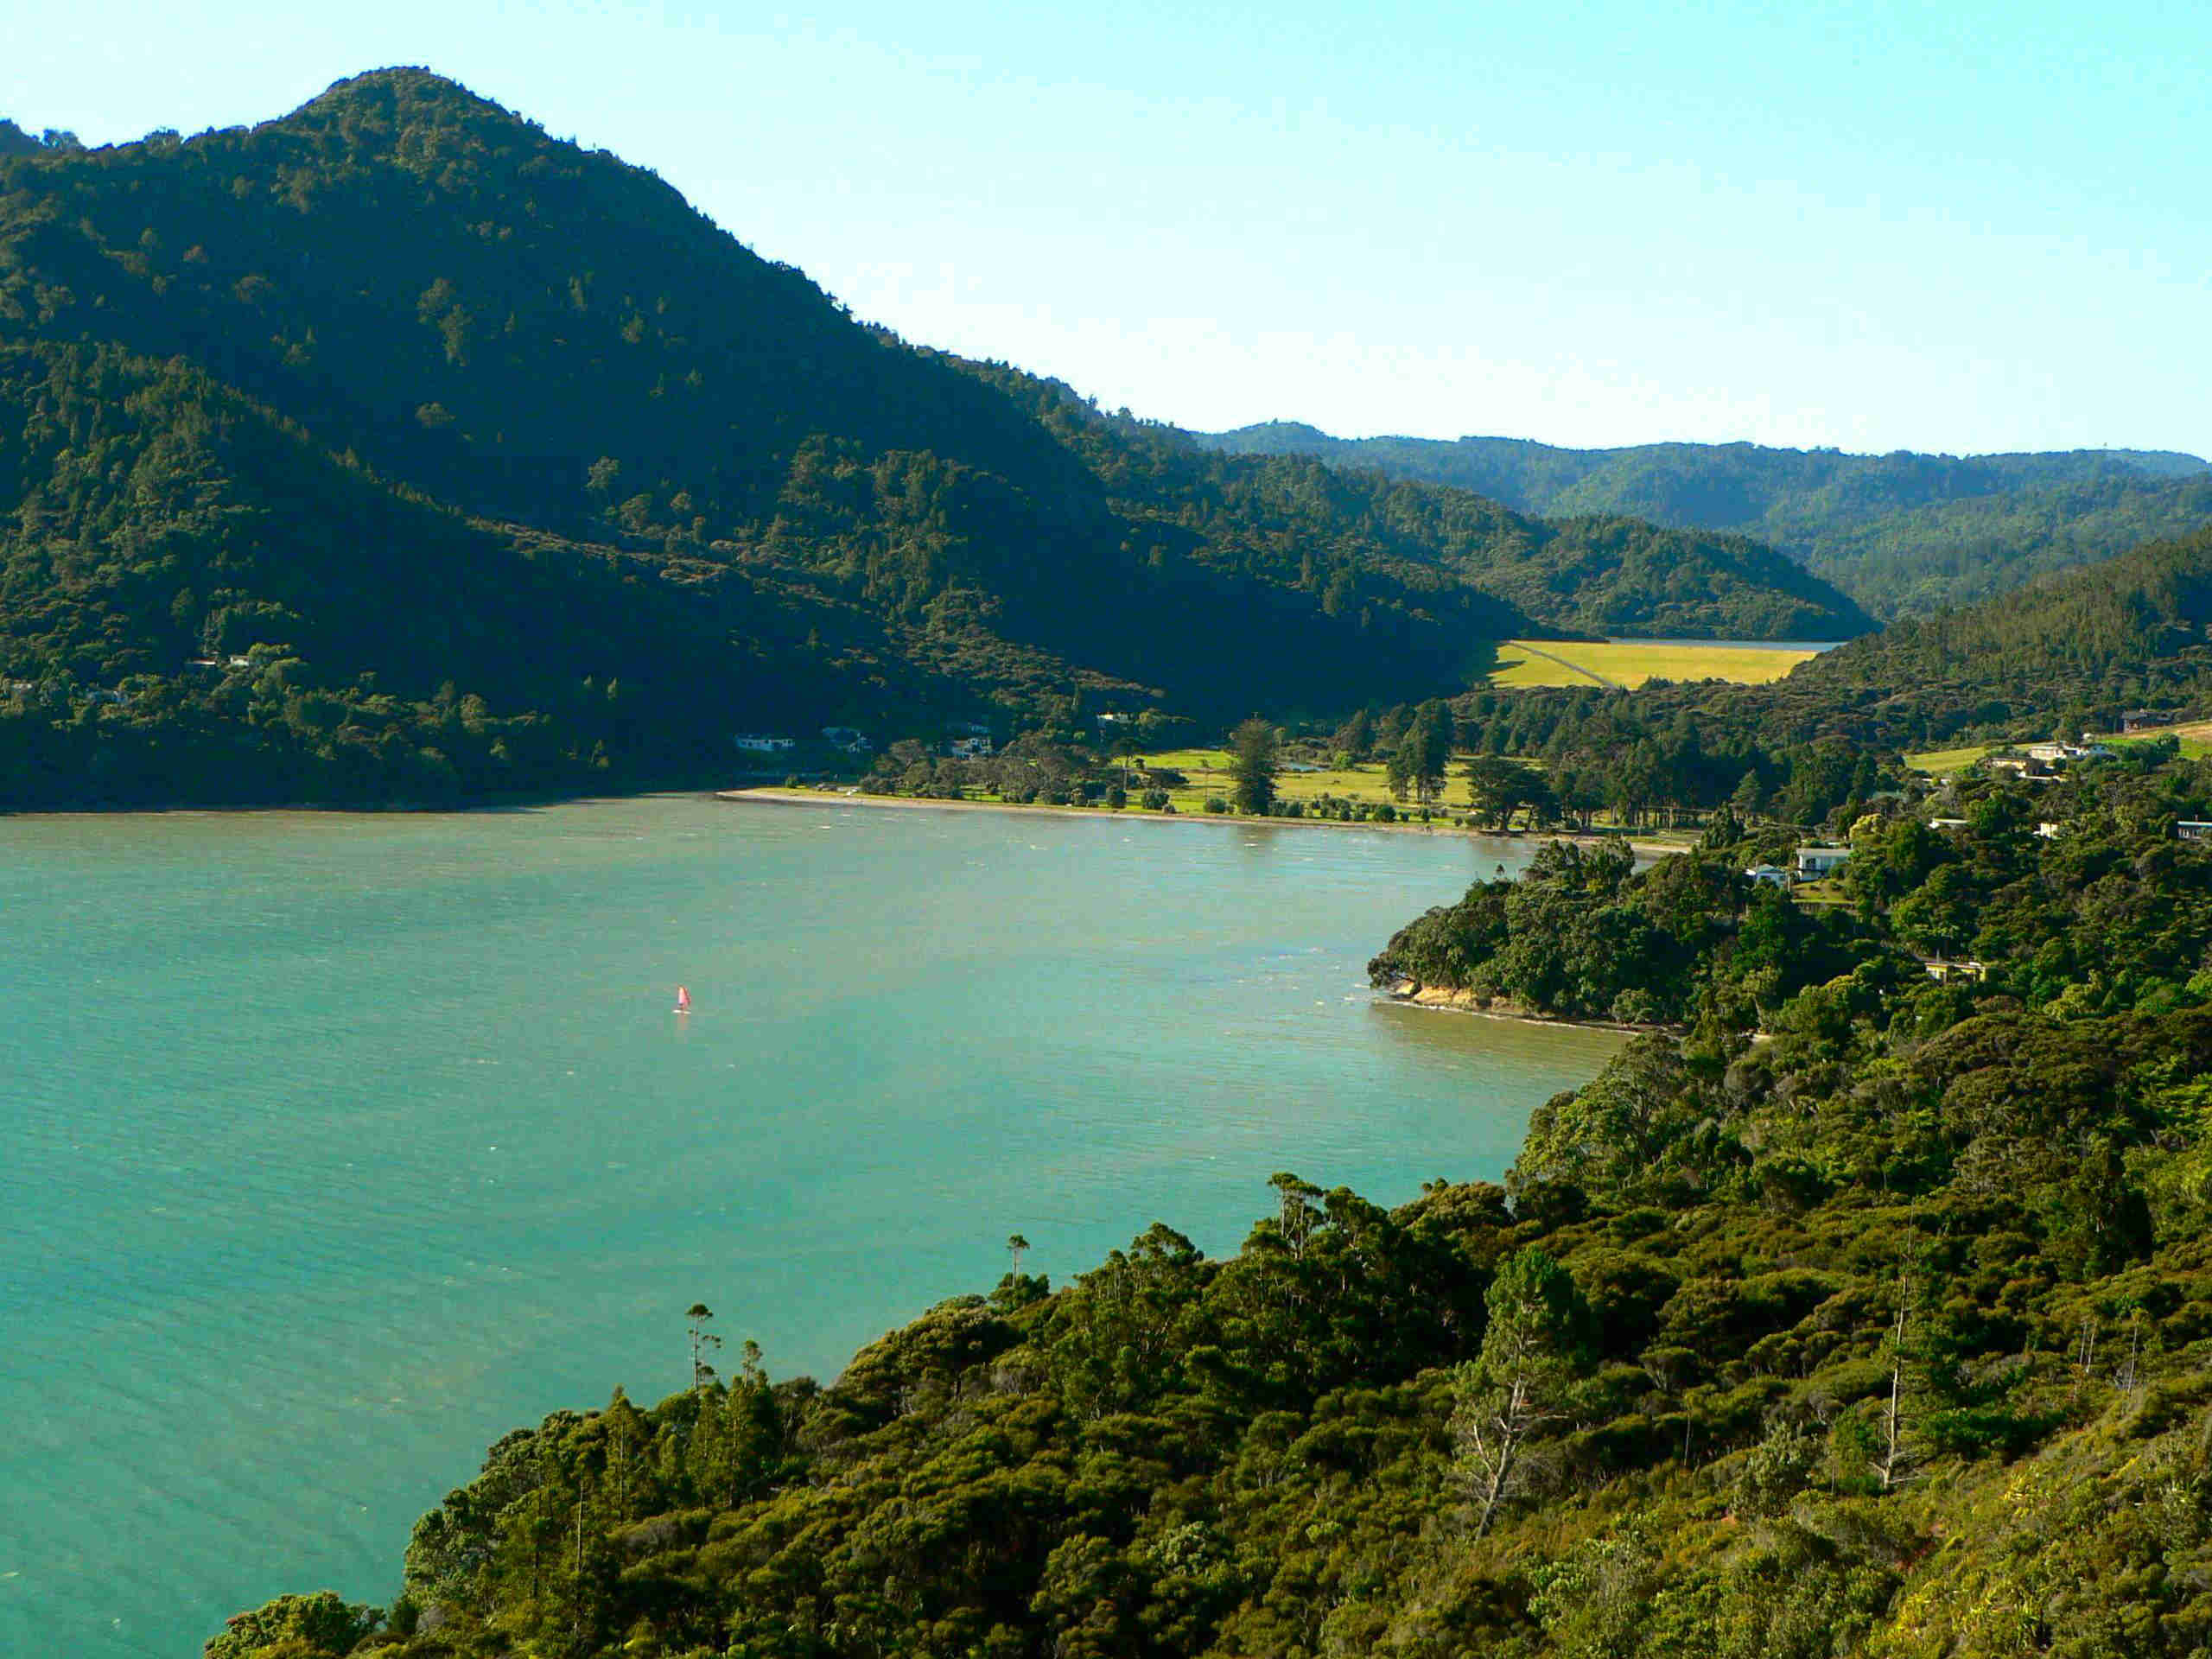 Huia_Waitakere_City_Auckland_New_Zealand